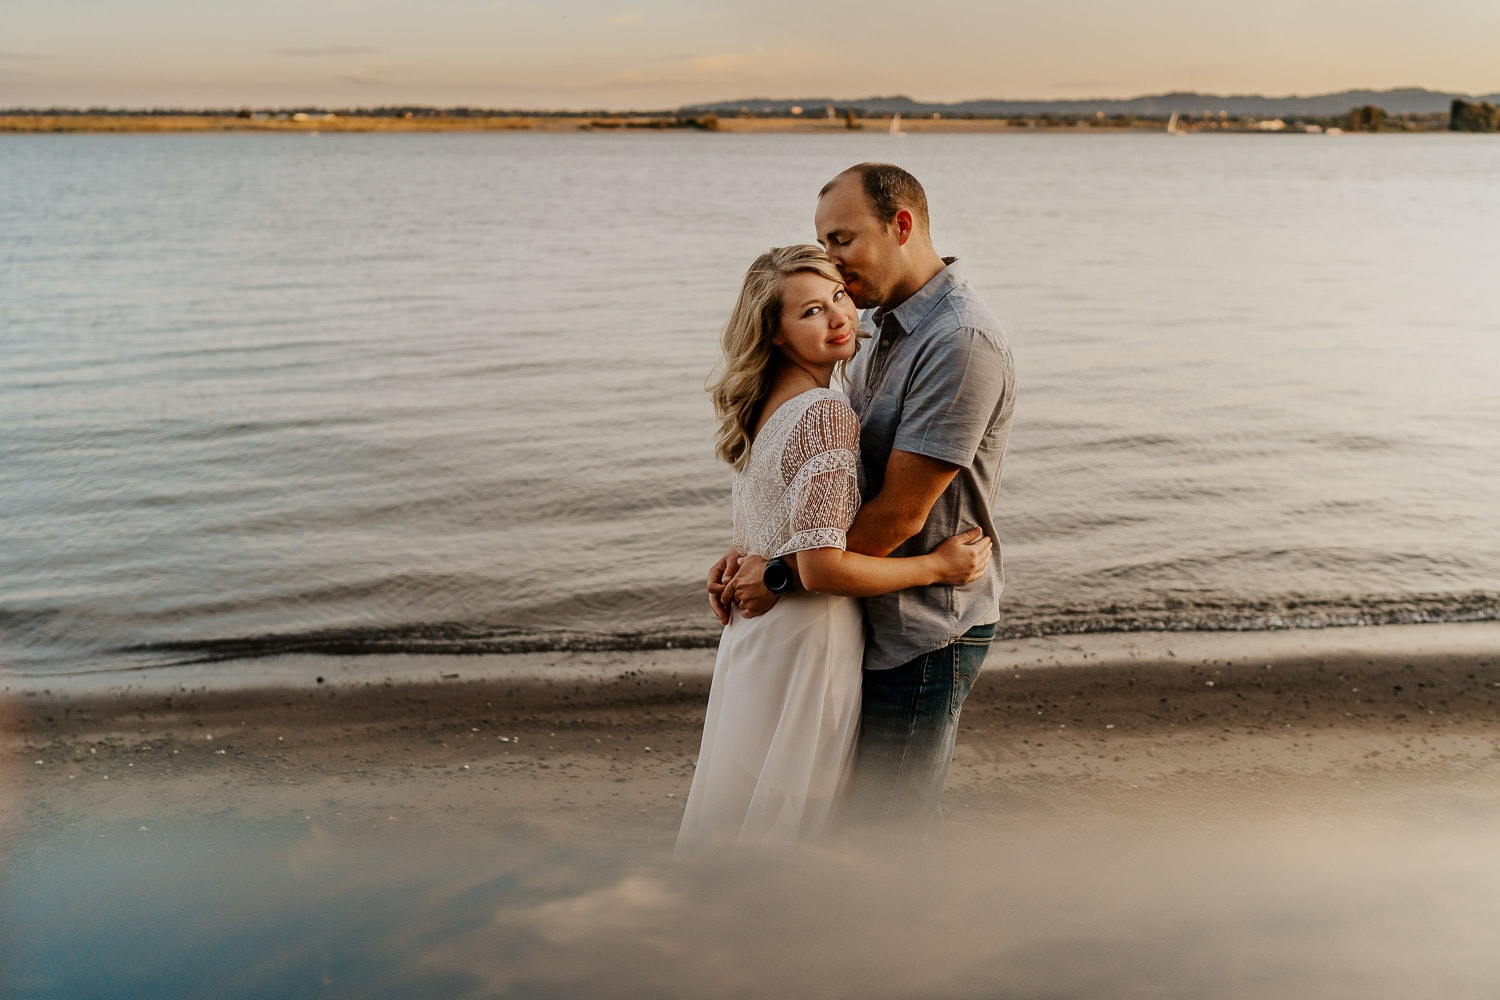 Couple embracing at a river location - Portland oregon couples photography